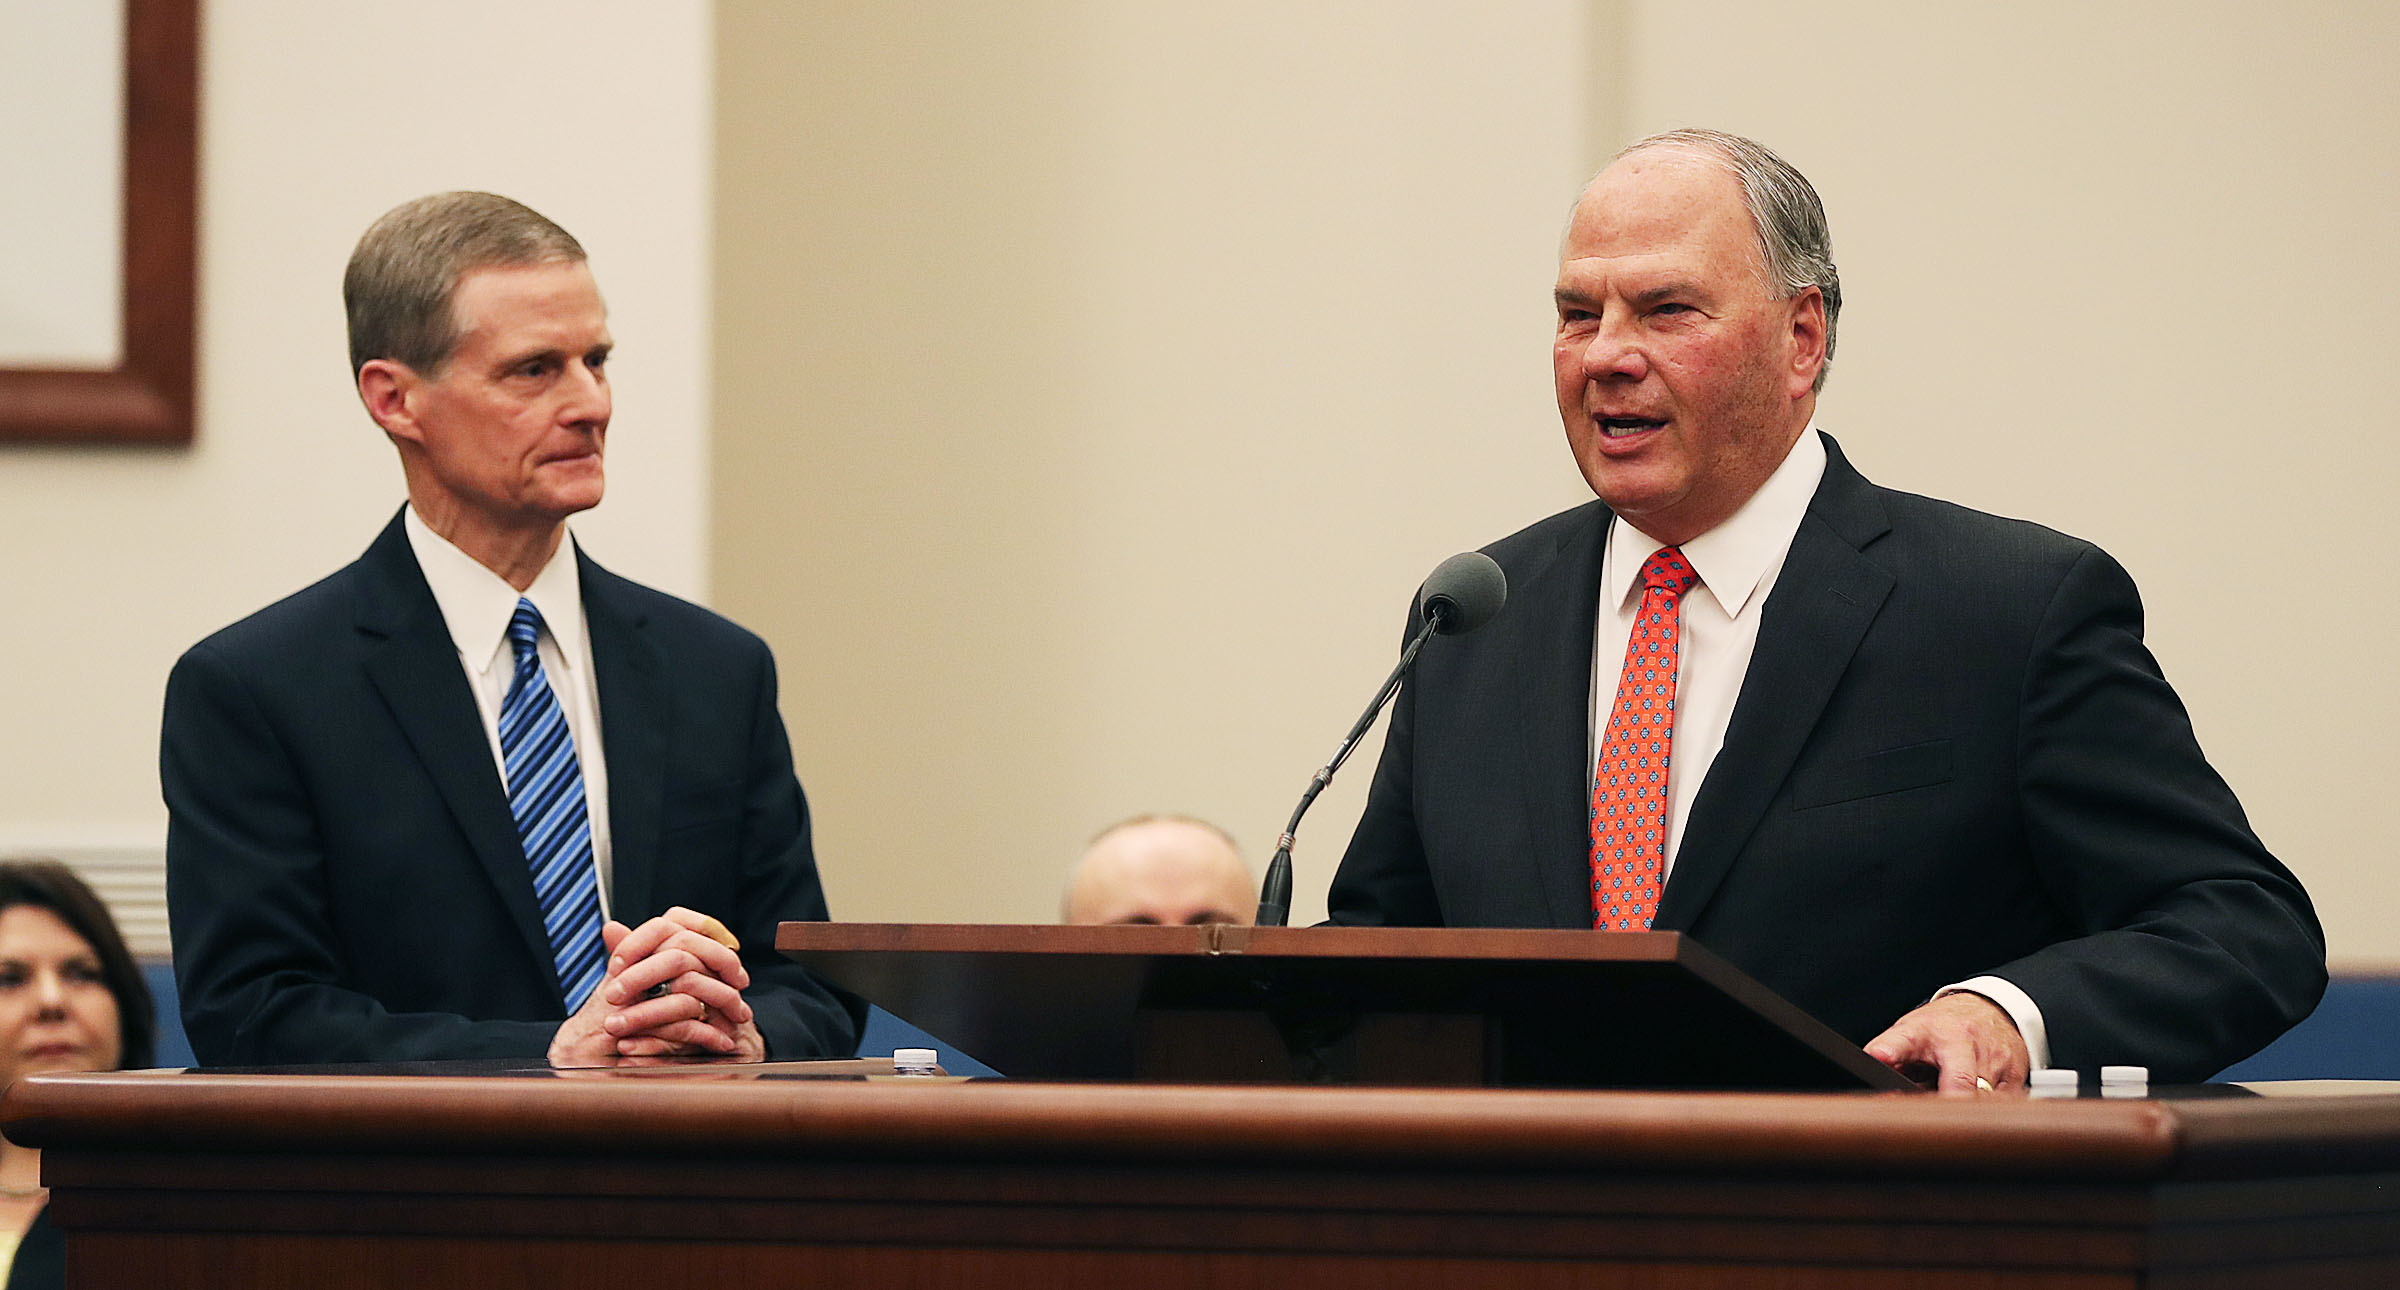 Elder Ronald A. Rasband, right, of the Quorum of the Twelve Apostles of The Church of Jesus Christ of Latter-day Saints speaks following an invitation by Elder David A. Bednar at a press briefing in a meetinghouse on the Rome Italy Temple grounds on Monday, Jan. 14, 2019.